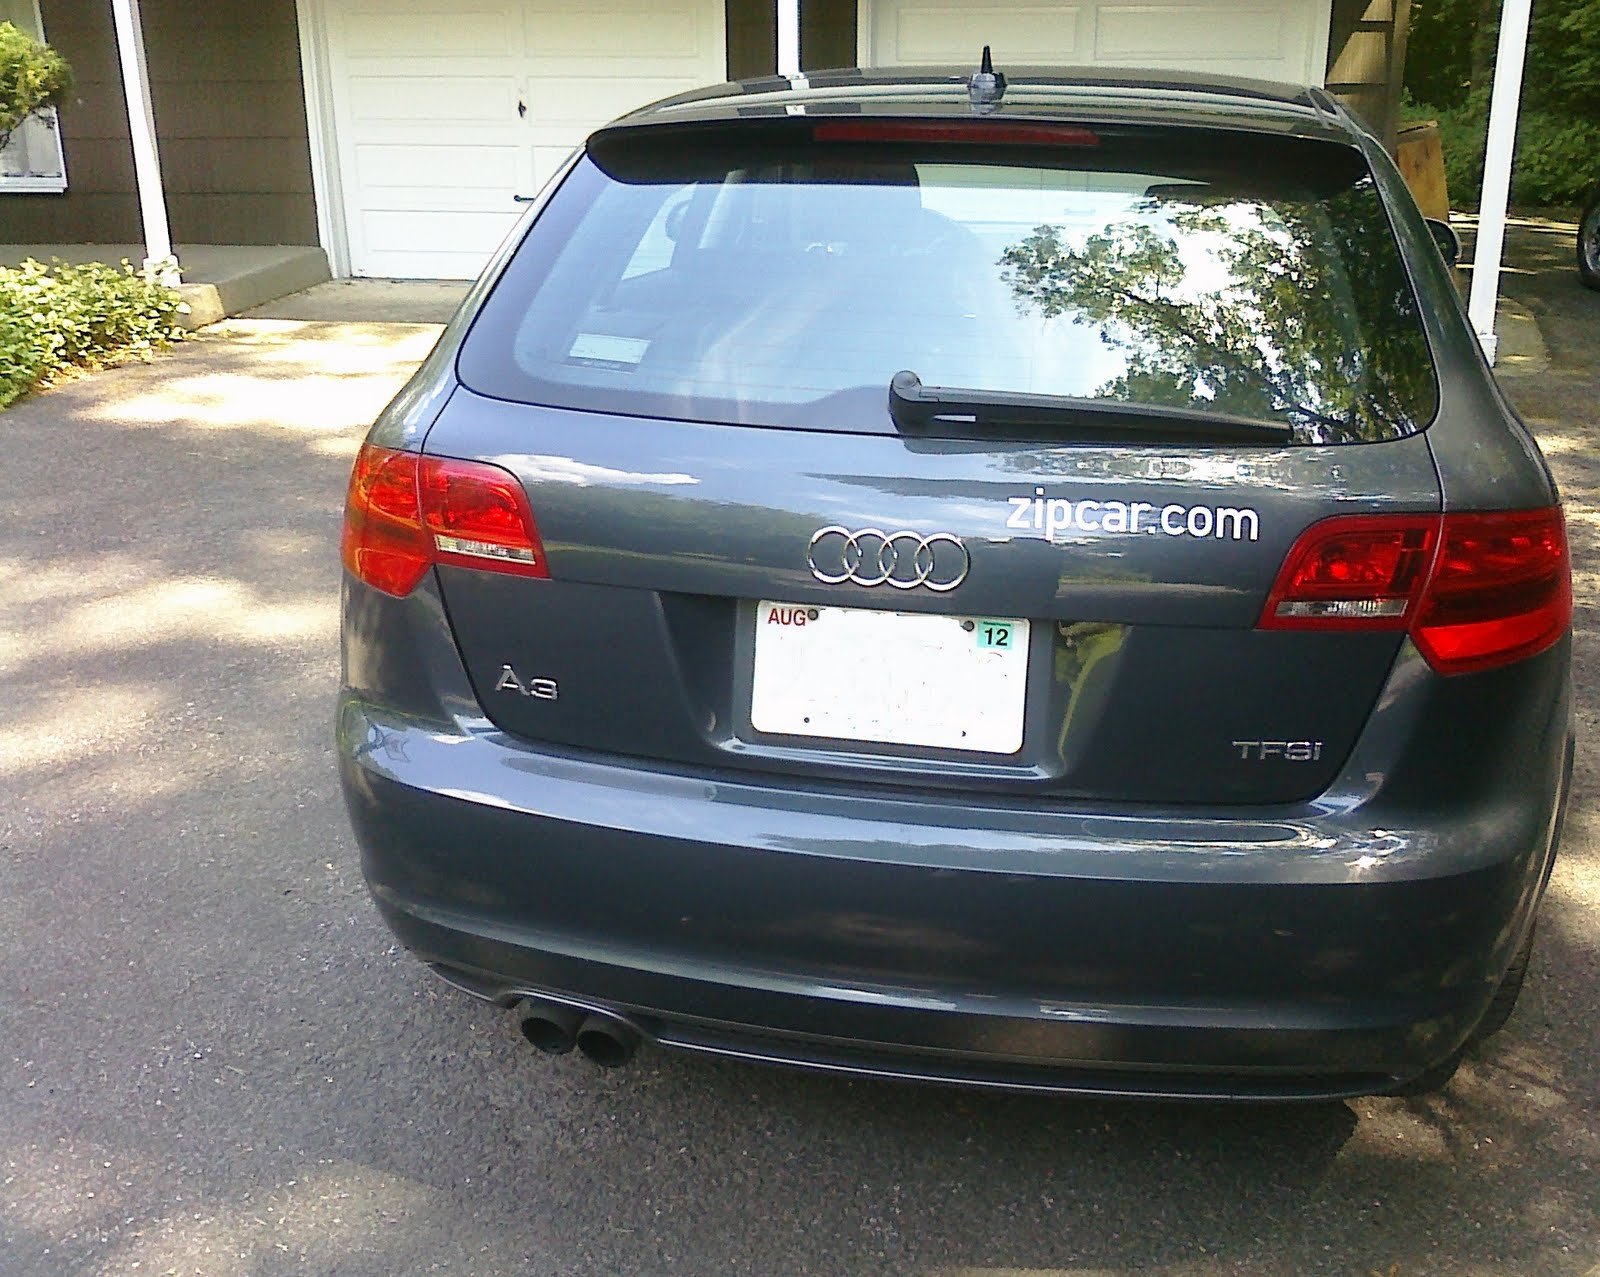 zipcar luxury cars  You Are What You Drive - A Car Blog: I love Zipcar...and the Audi A3